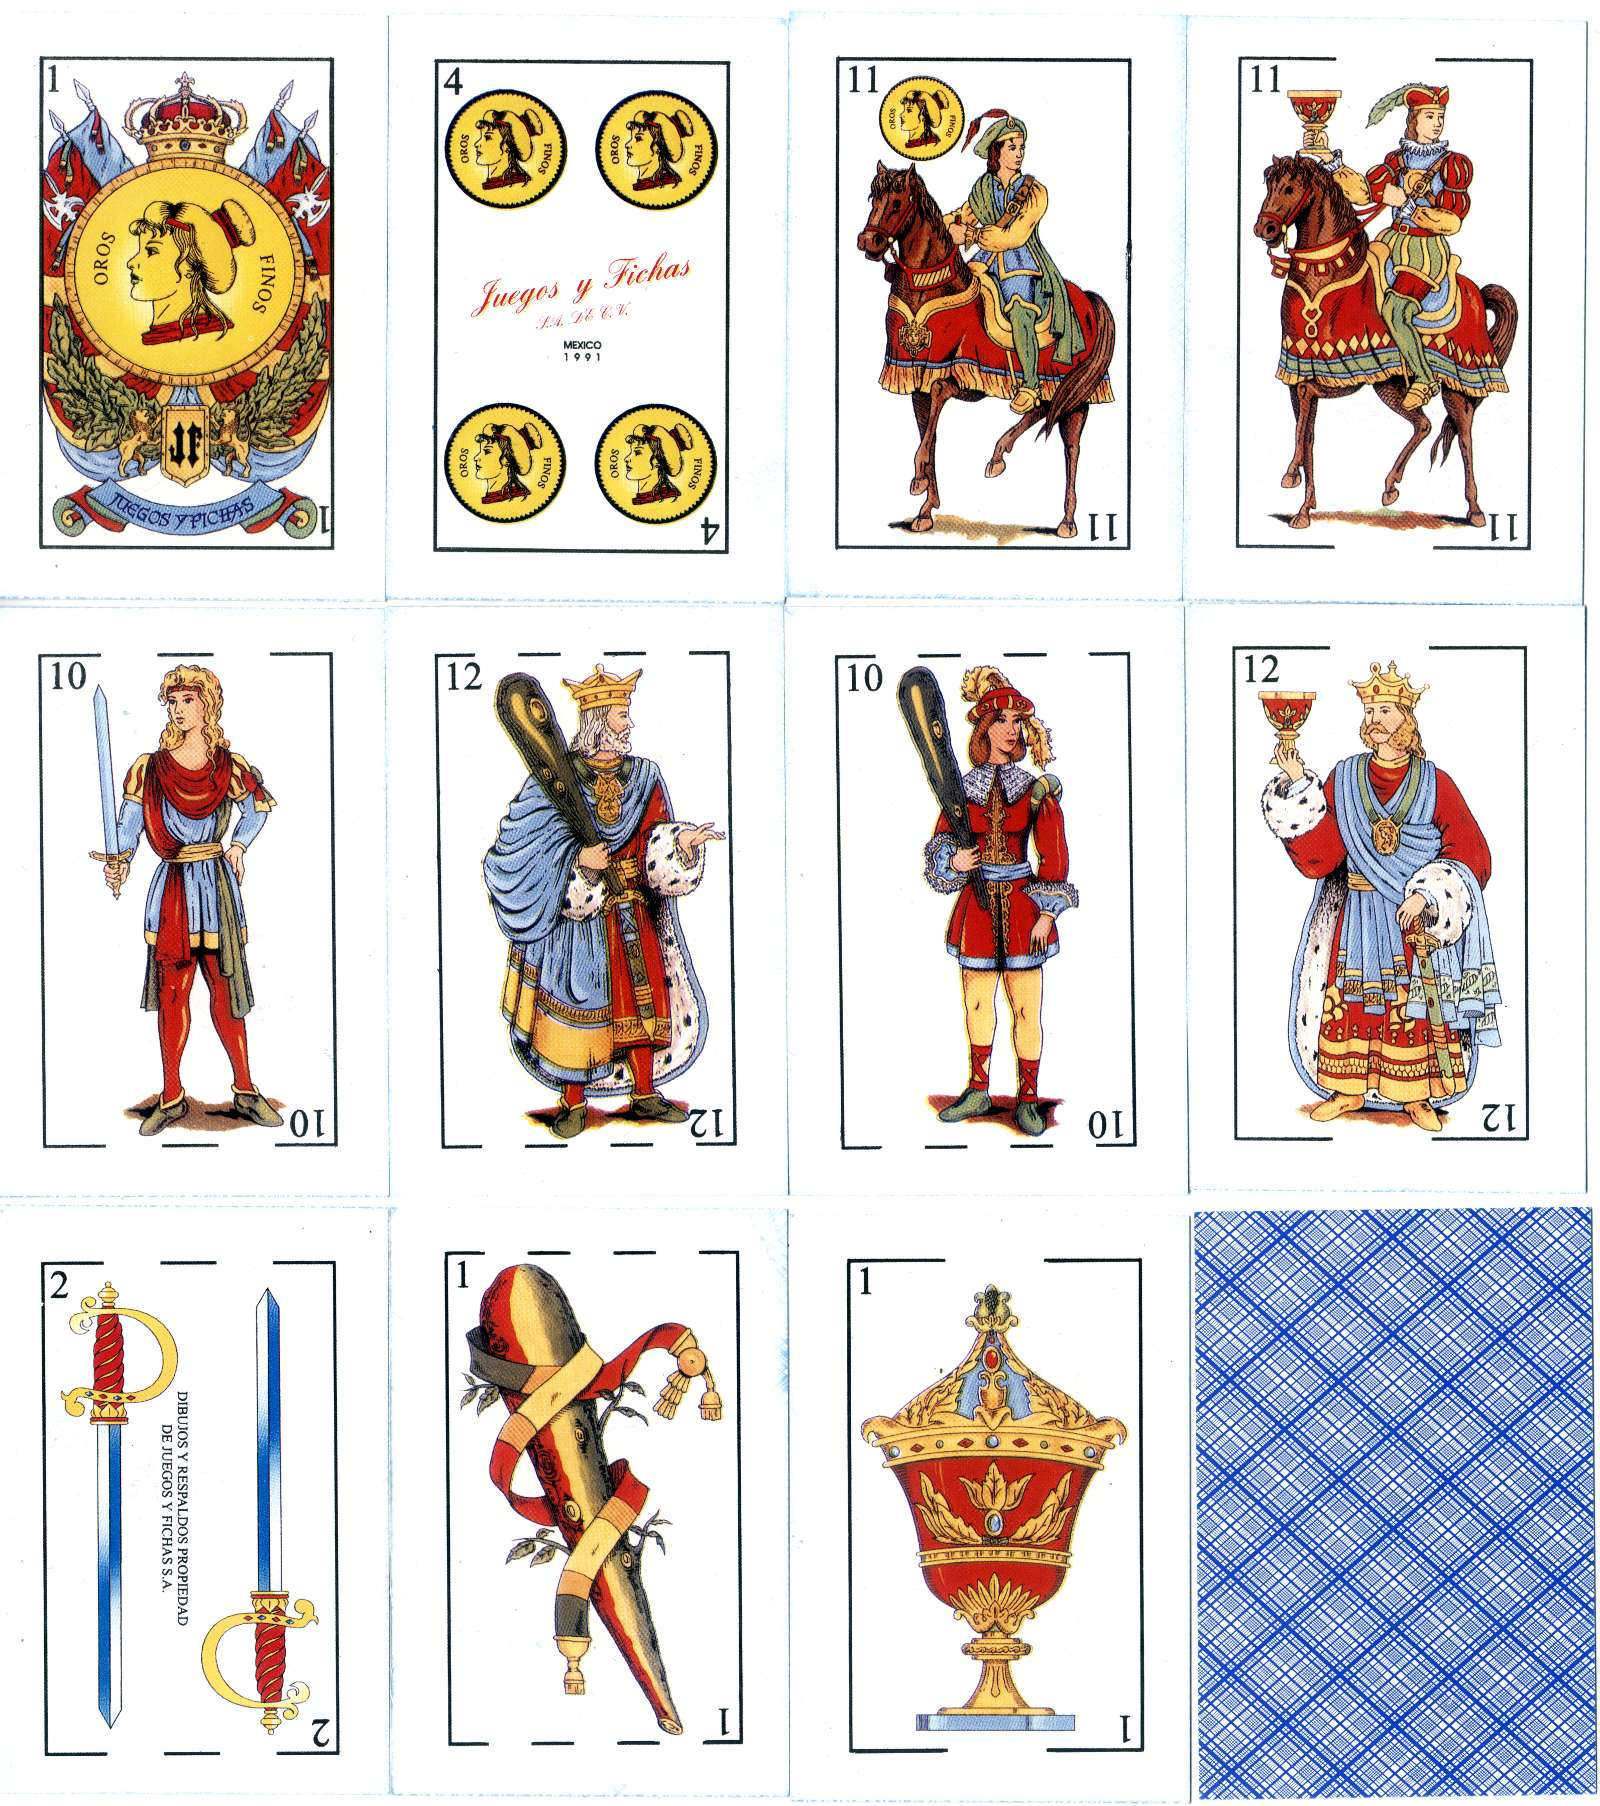 Spanish-suited playing cards made by Juegos y Fichas, S.A. de C.V., Mexico, 1991